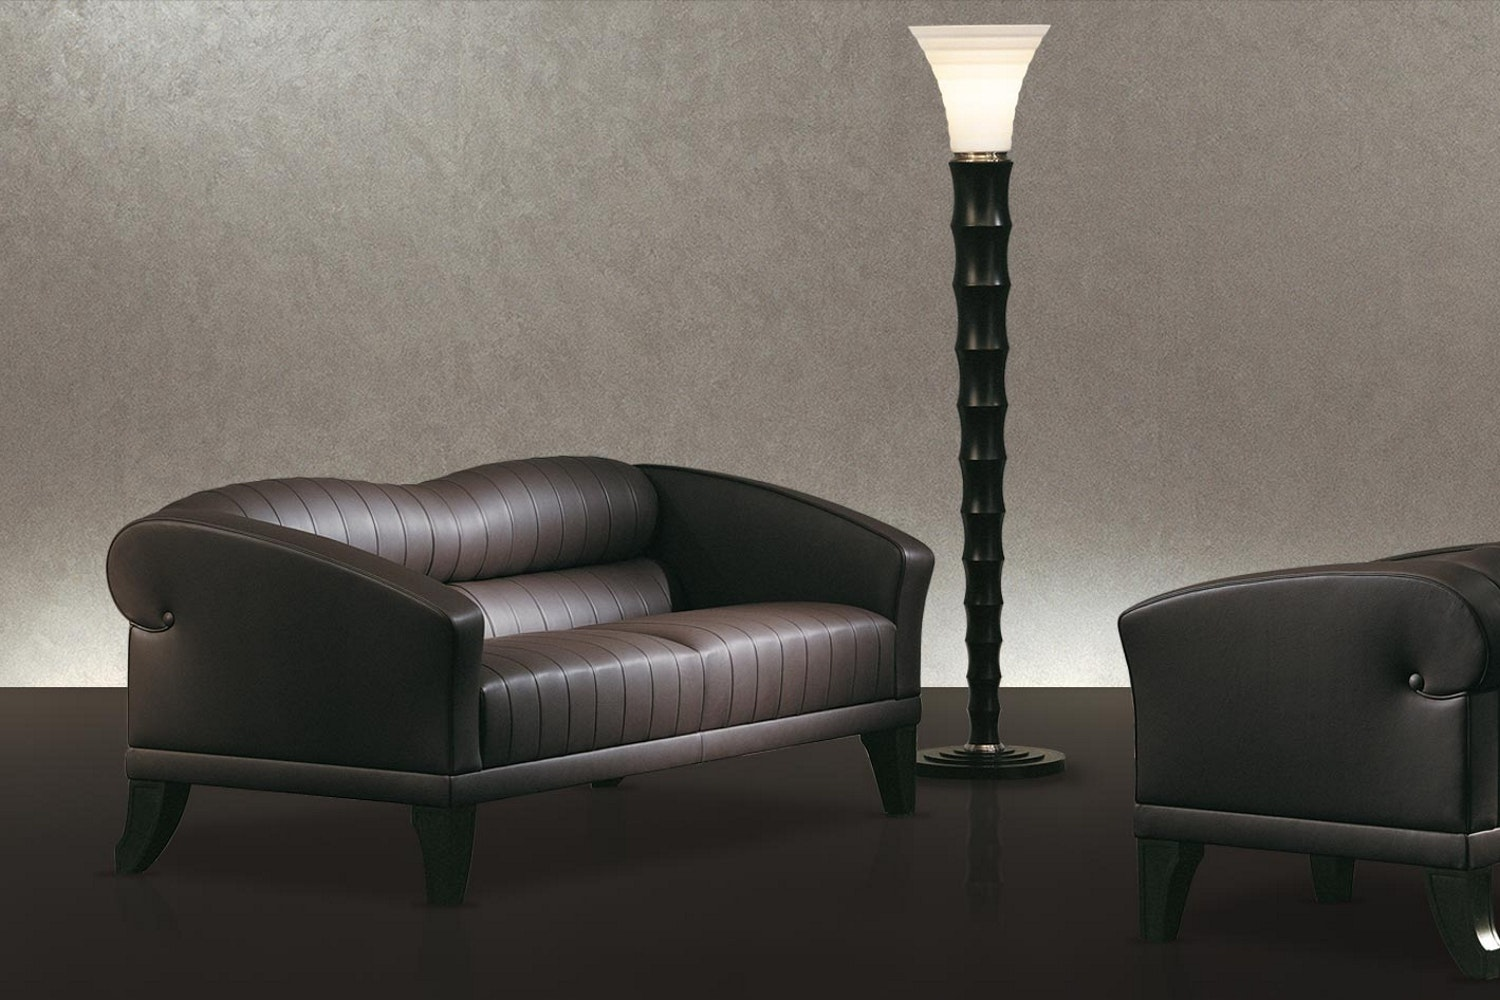 Ovis Sofa by Leon Krier for Giorgetti